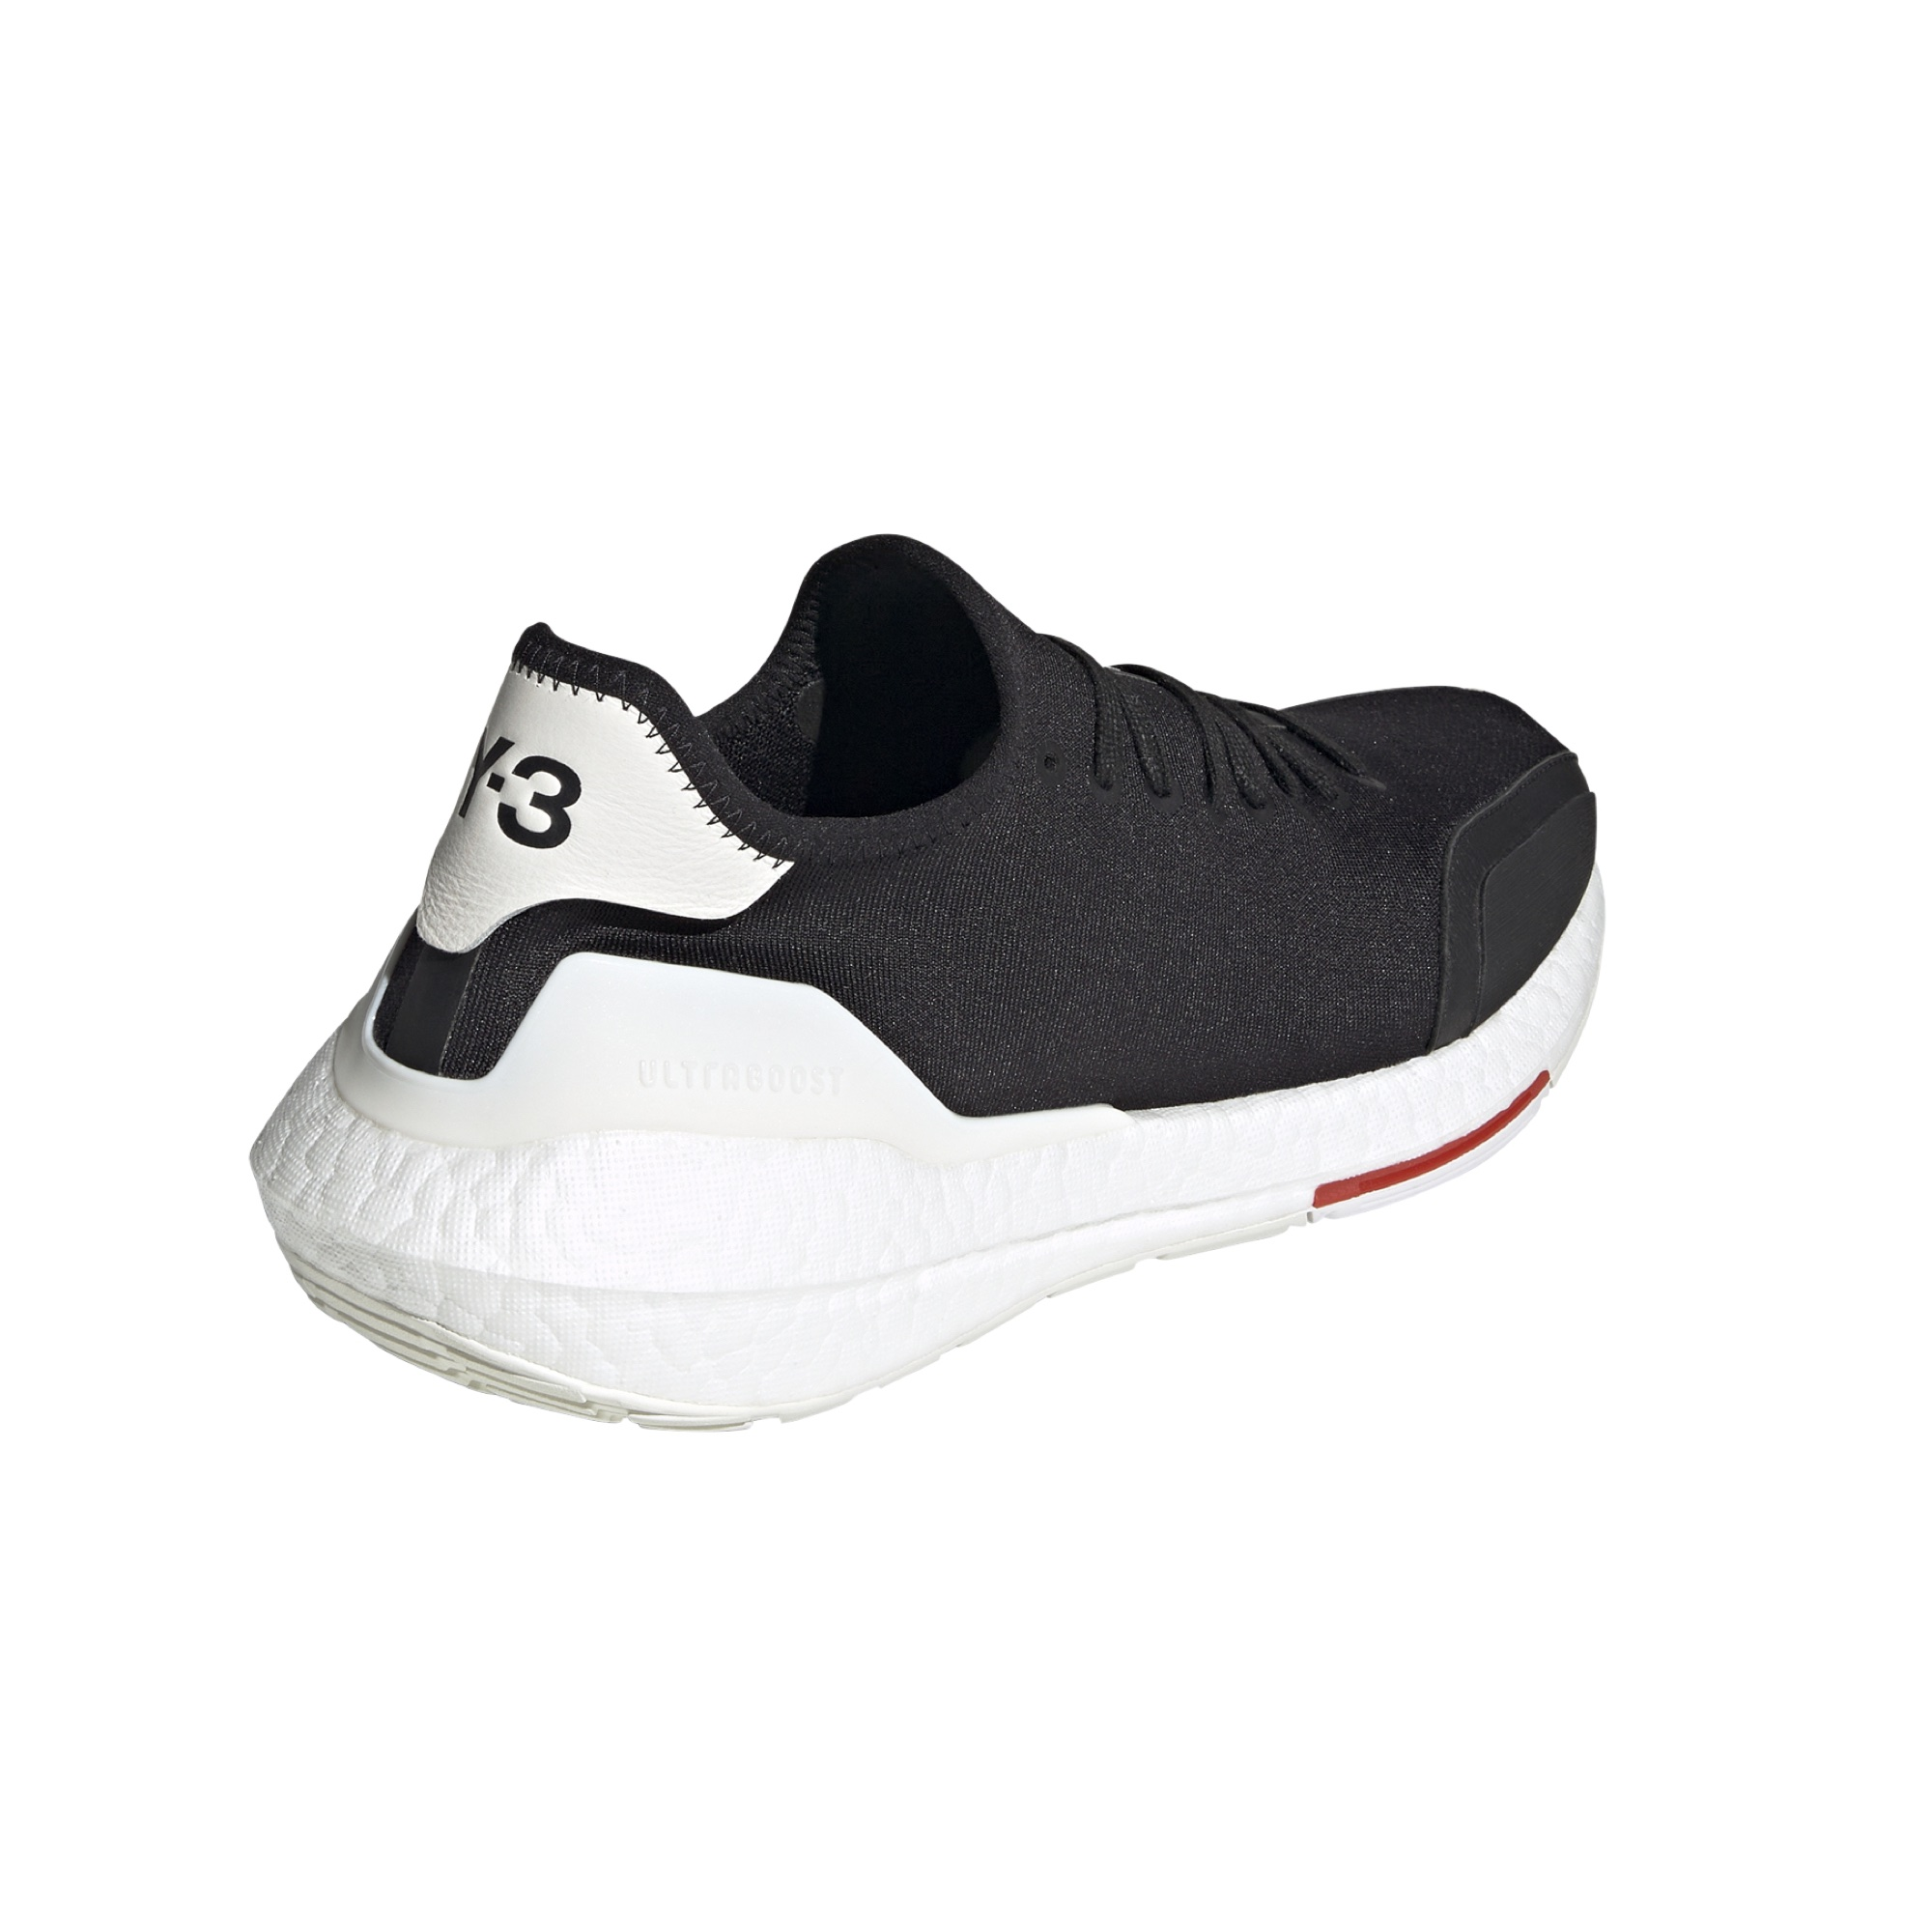 Y3 Adidas Ultraboost 21 black red core white